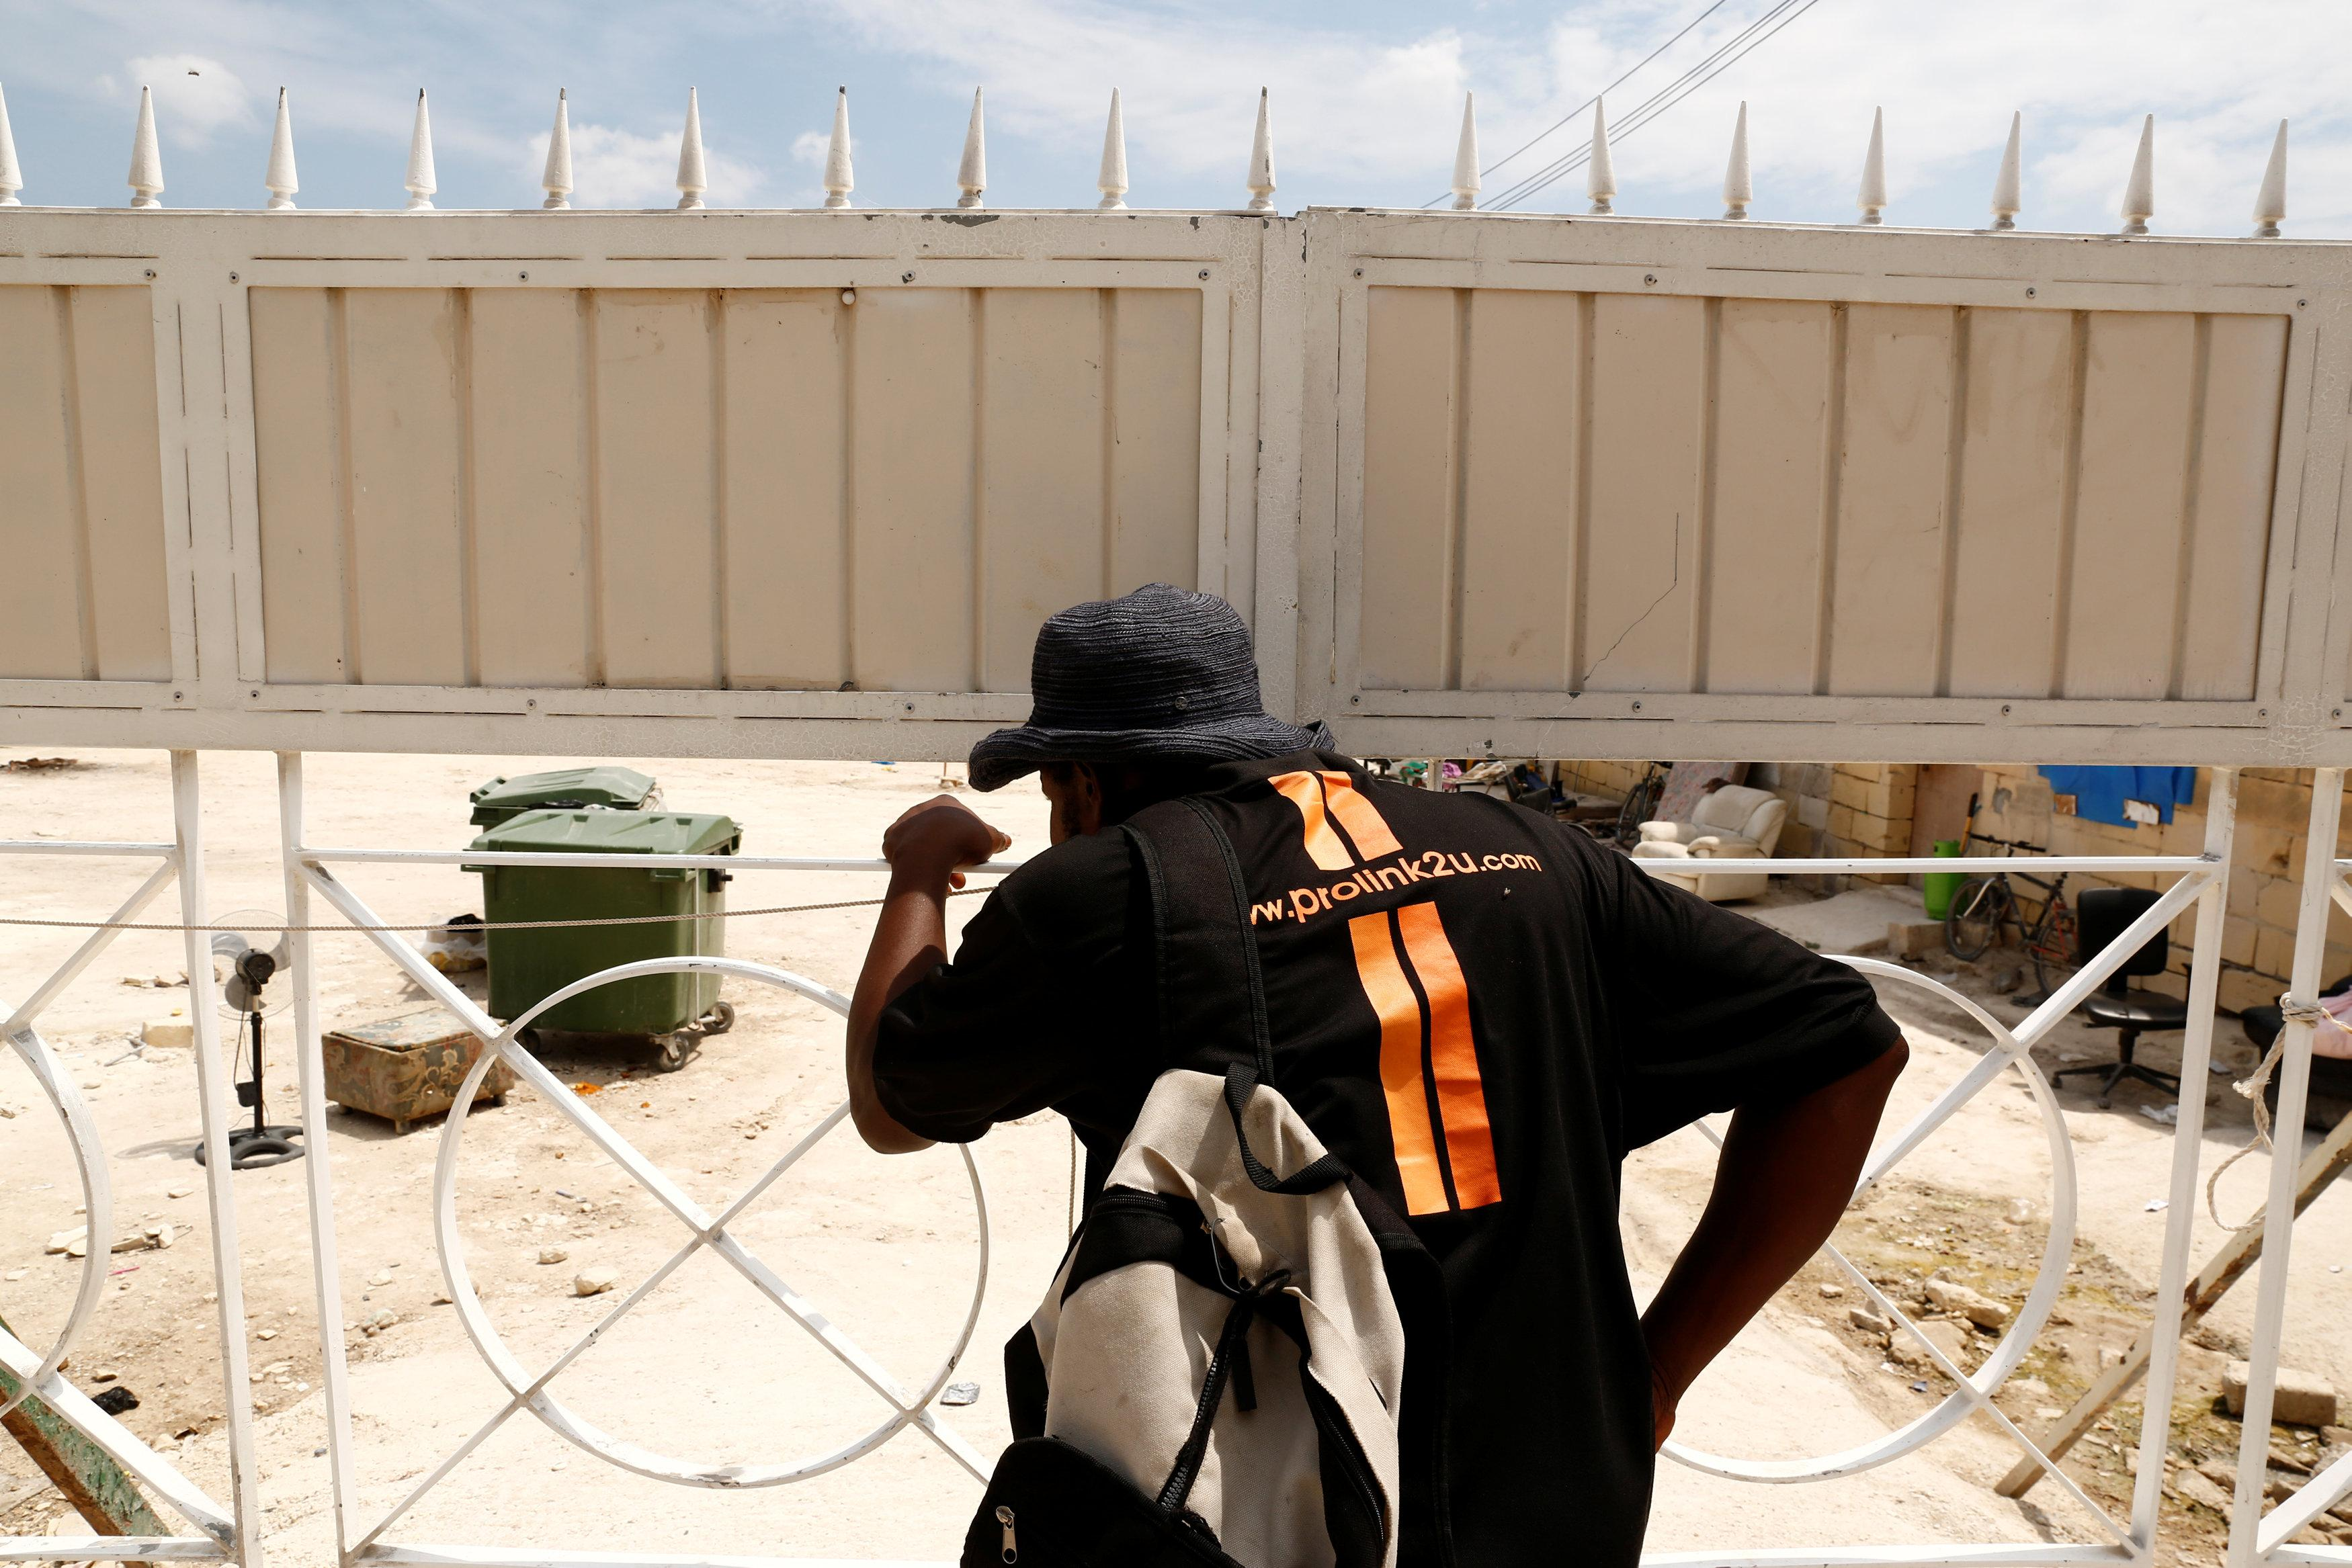 An evicted migrant looks into a farm where police evicted some 110 African migrants who had been living in stalls formerly used by cows, in Qormi, Malta August 13, 2018.  Darrin Zammit Lupi